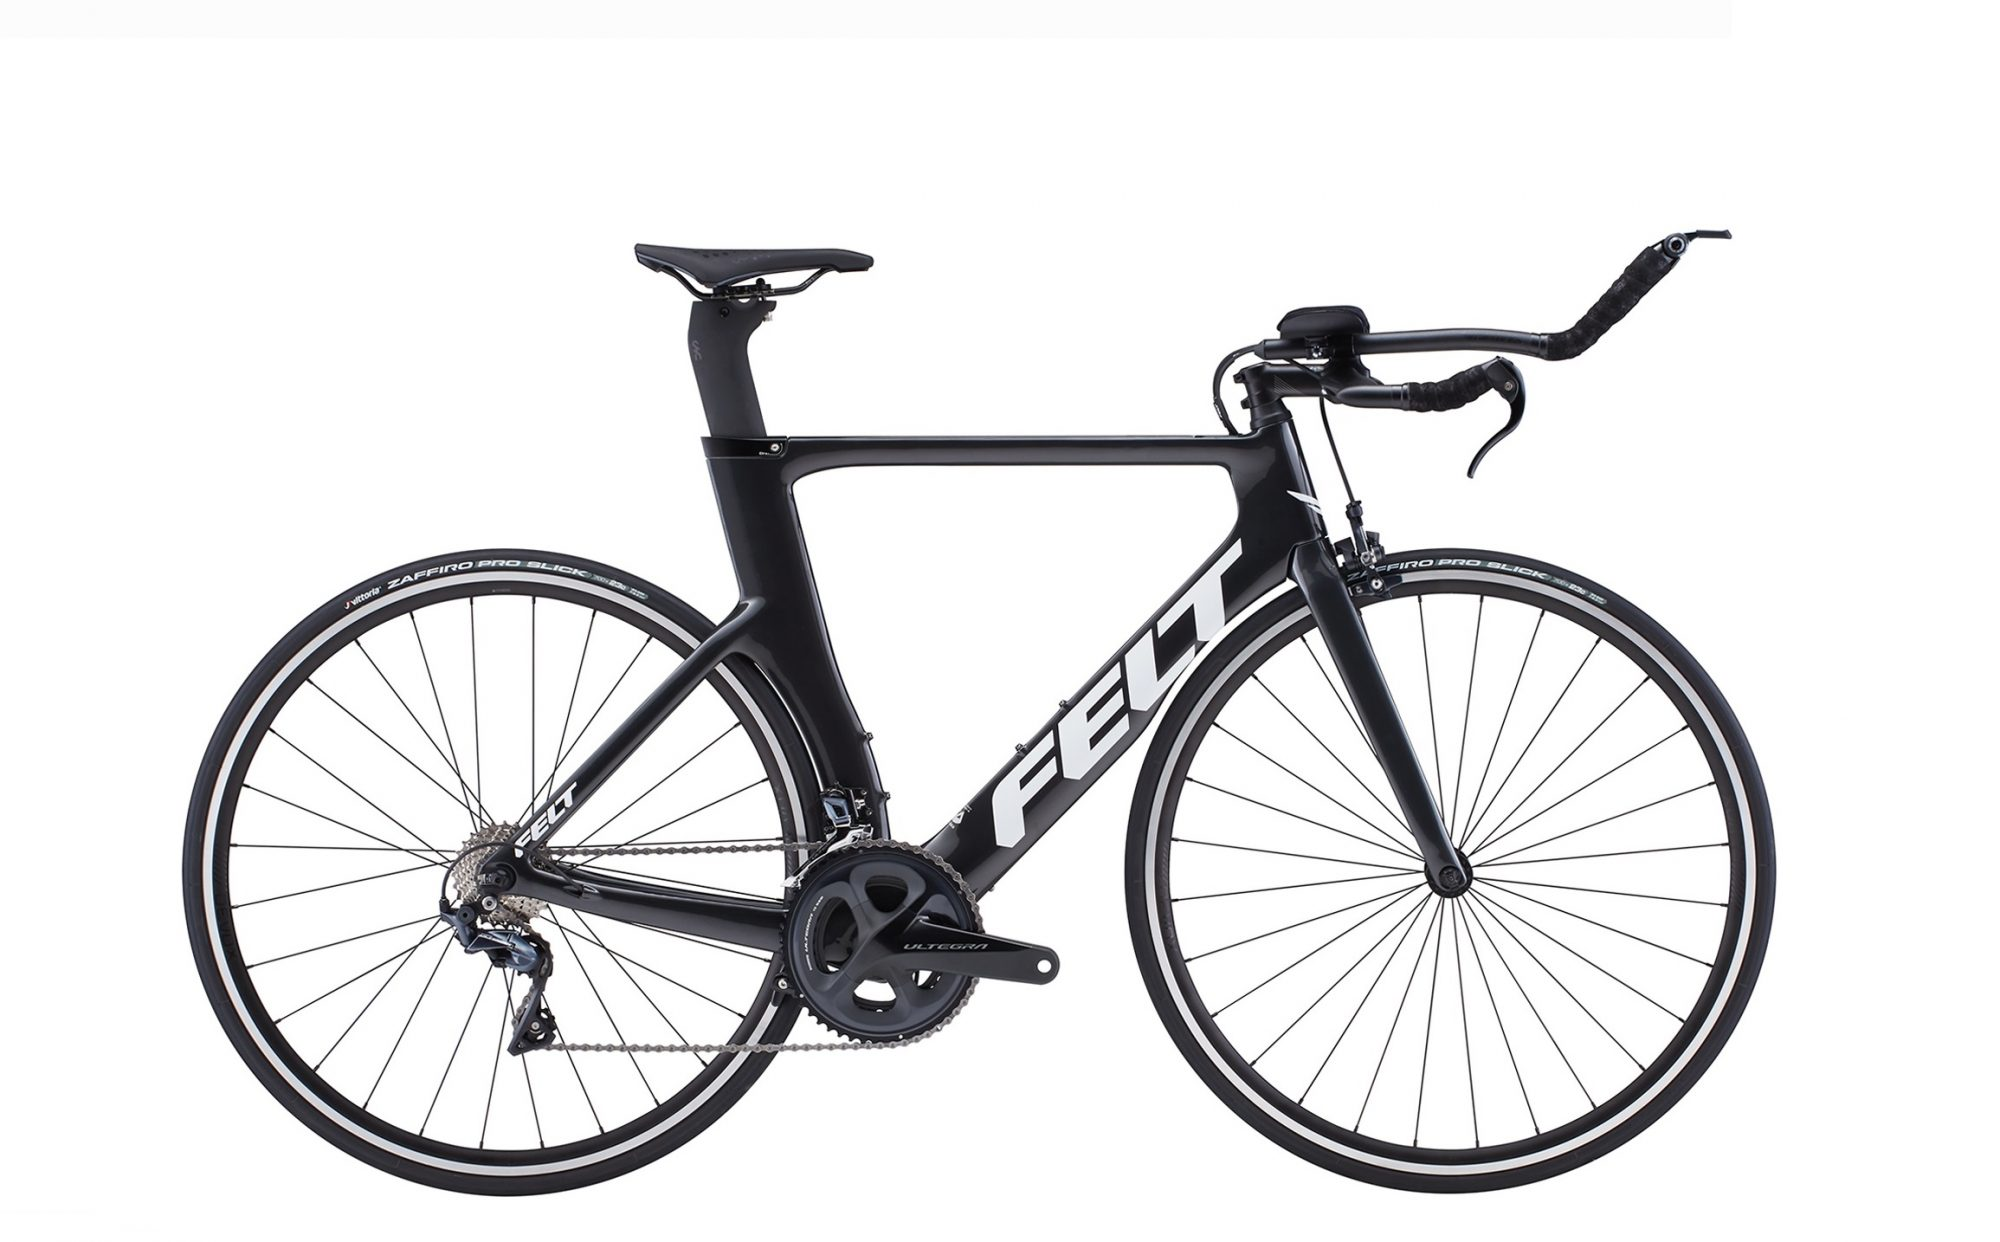 Best Entry Level TT Triathlon Bike Felt B 2021